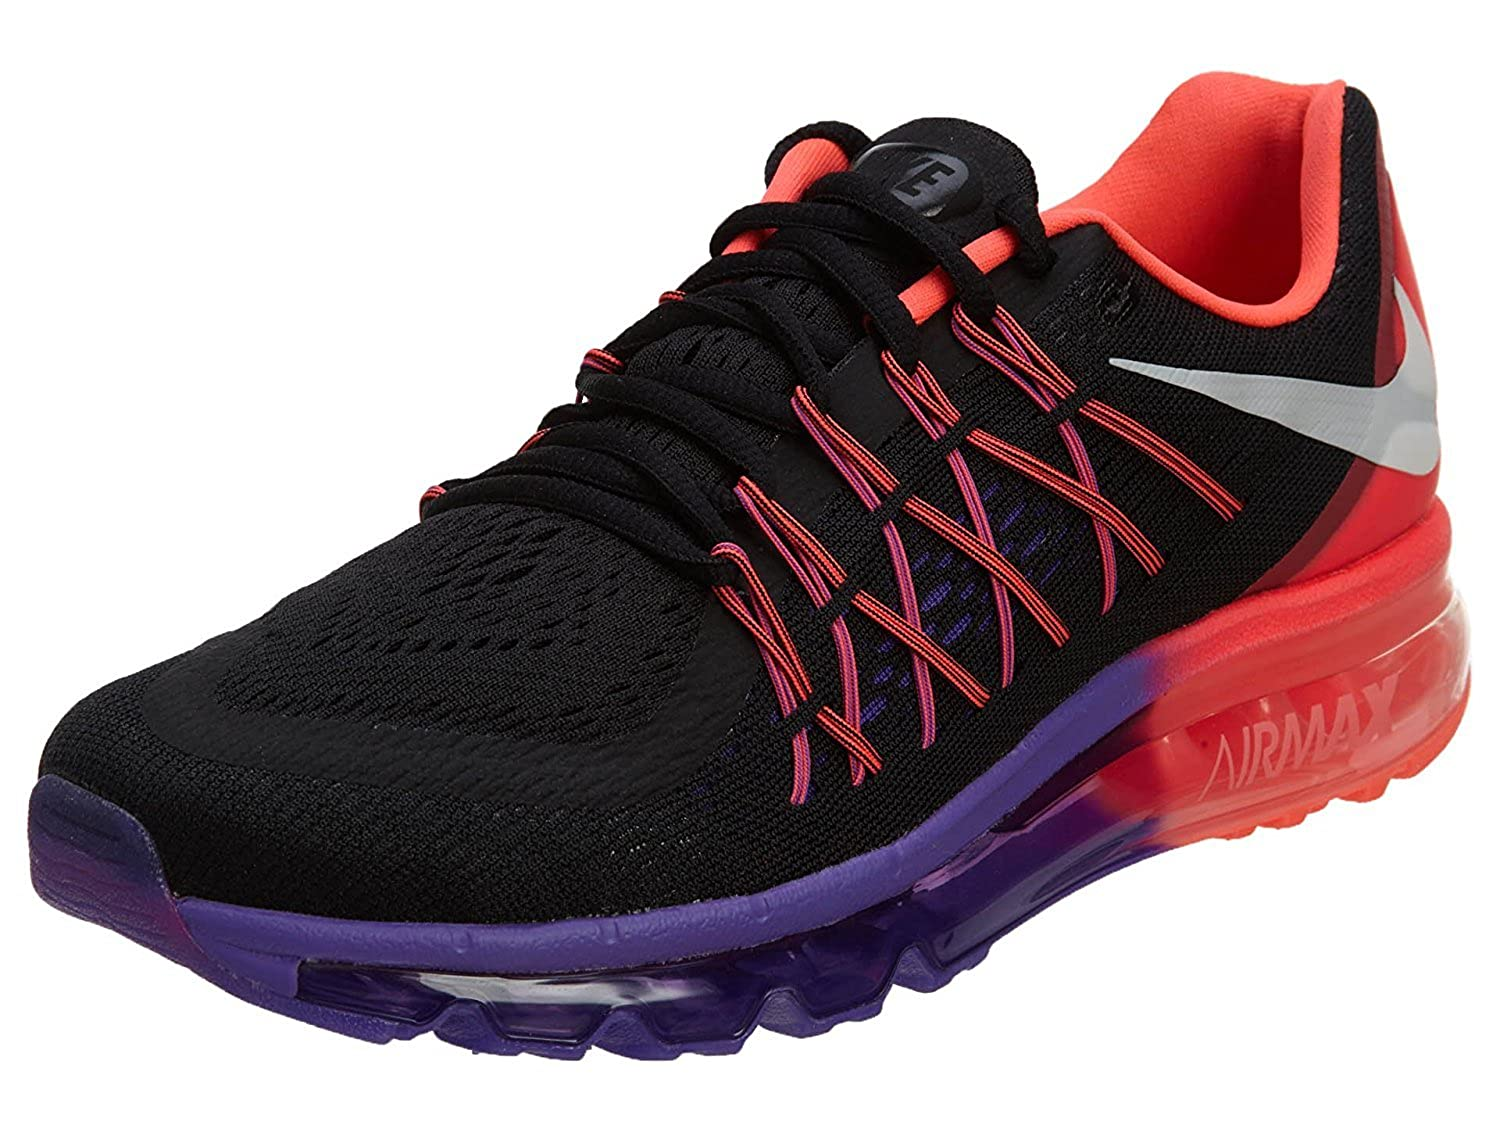 timeless design 0dcc3 c86bb Nike Airmax 2015 Black Red Purple Running Shoes for Womens 698903-011  Buy  Online at Low Prices in India - Amazon.in